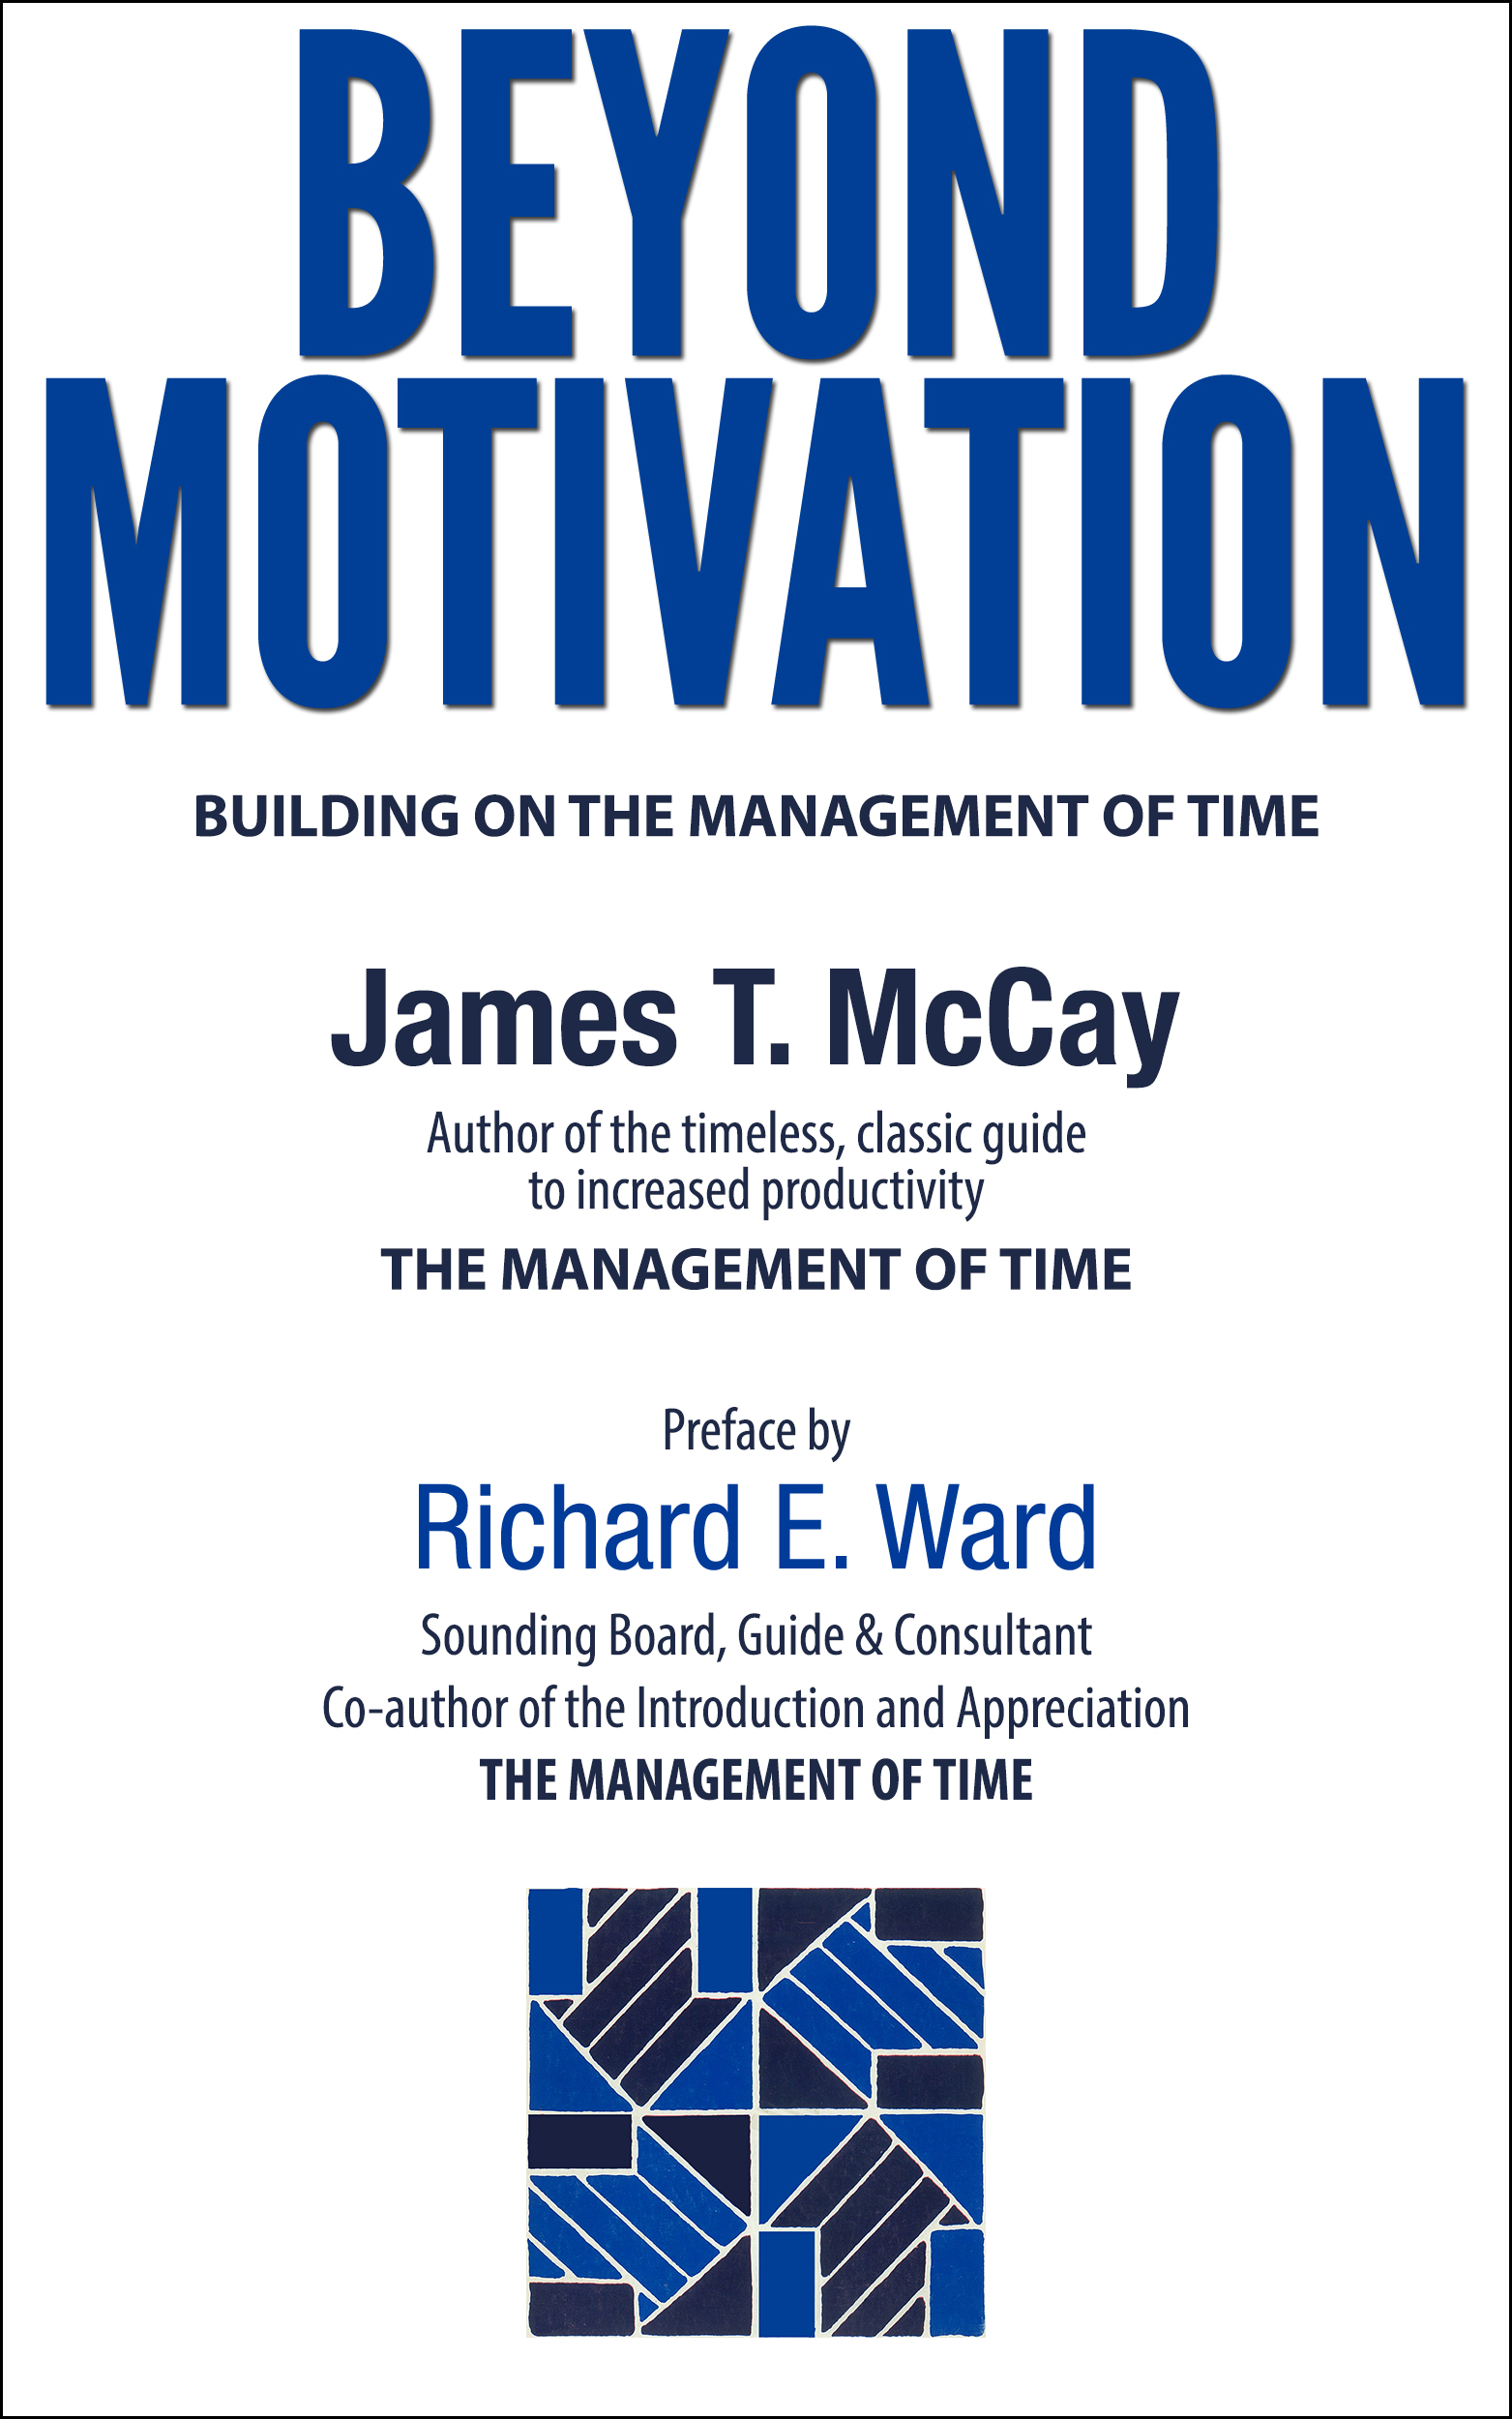 Buy Beyond Motivation by James T. McCay